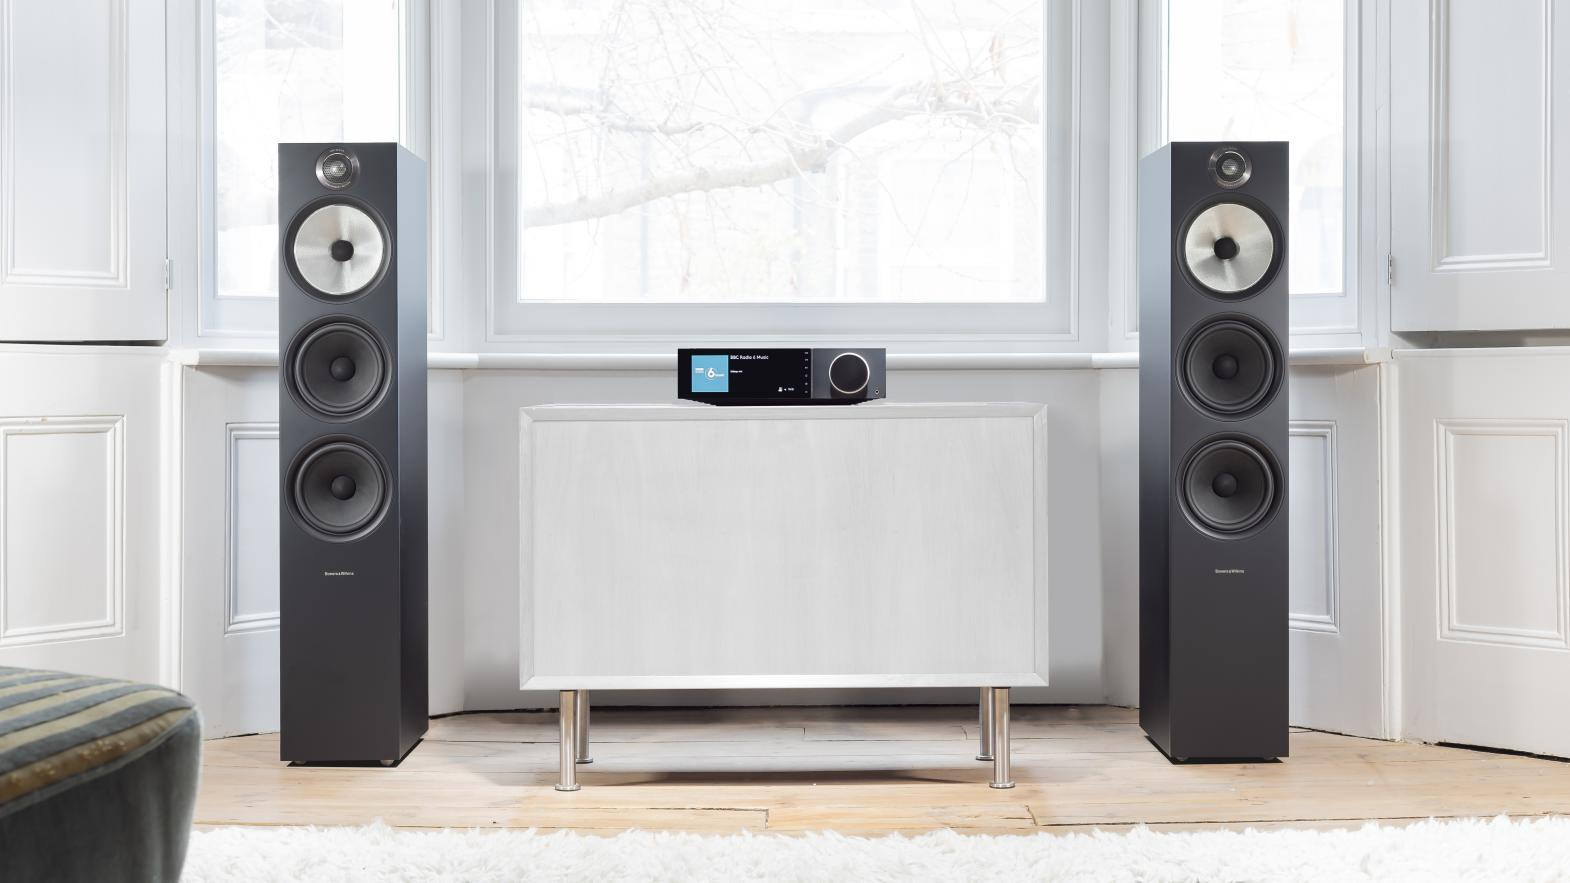 Evo and tower speakers in white room